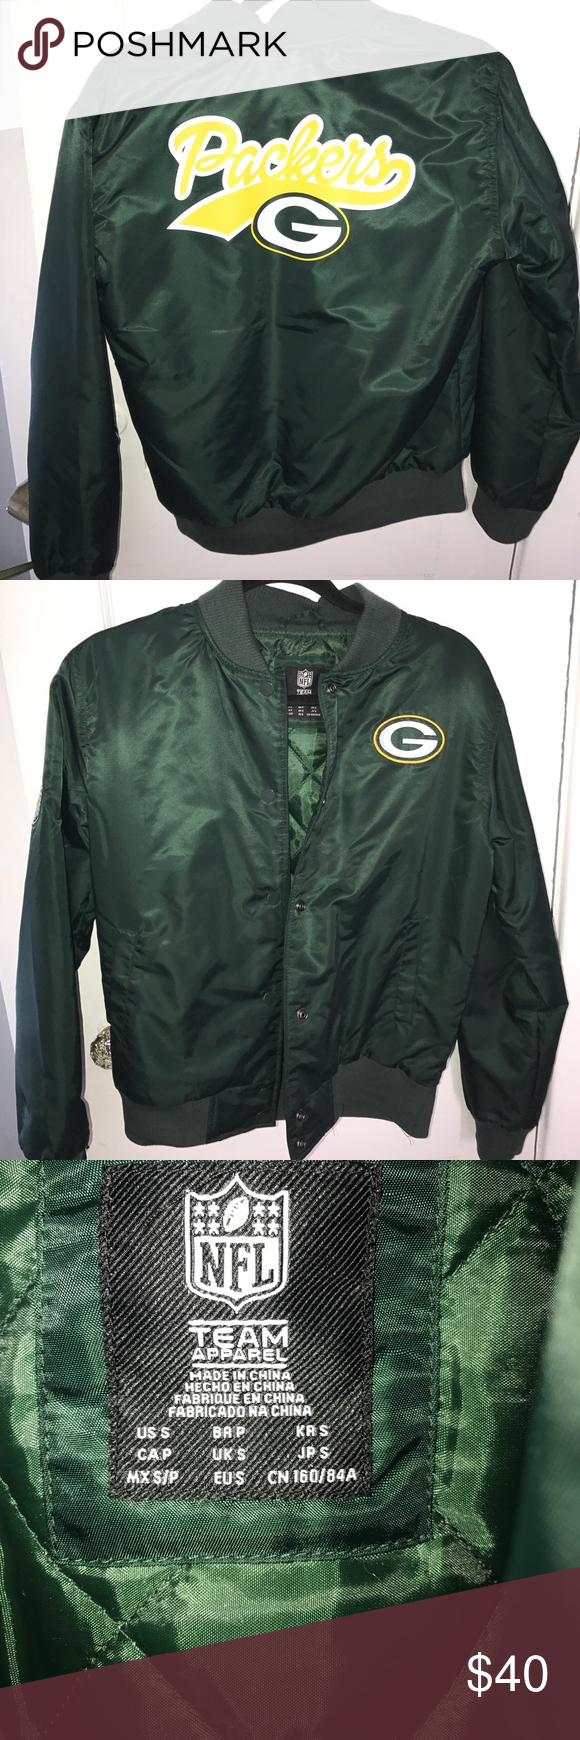 Green Bay packers bomber Green bomber worn once great condition Forever 21 Jackets & Coats